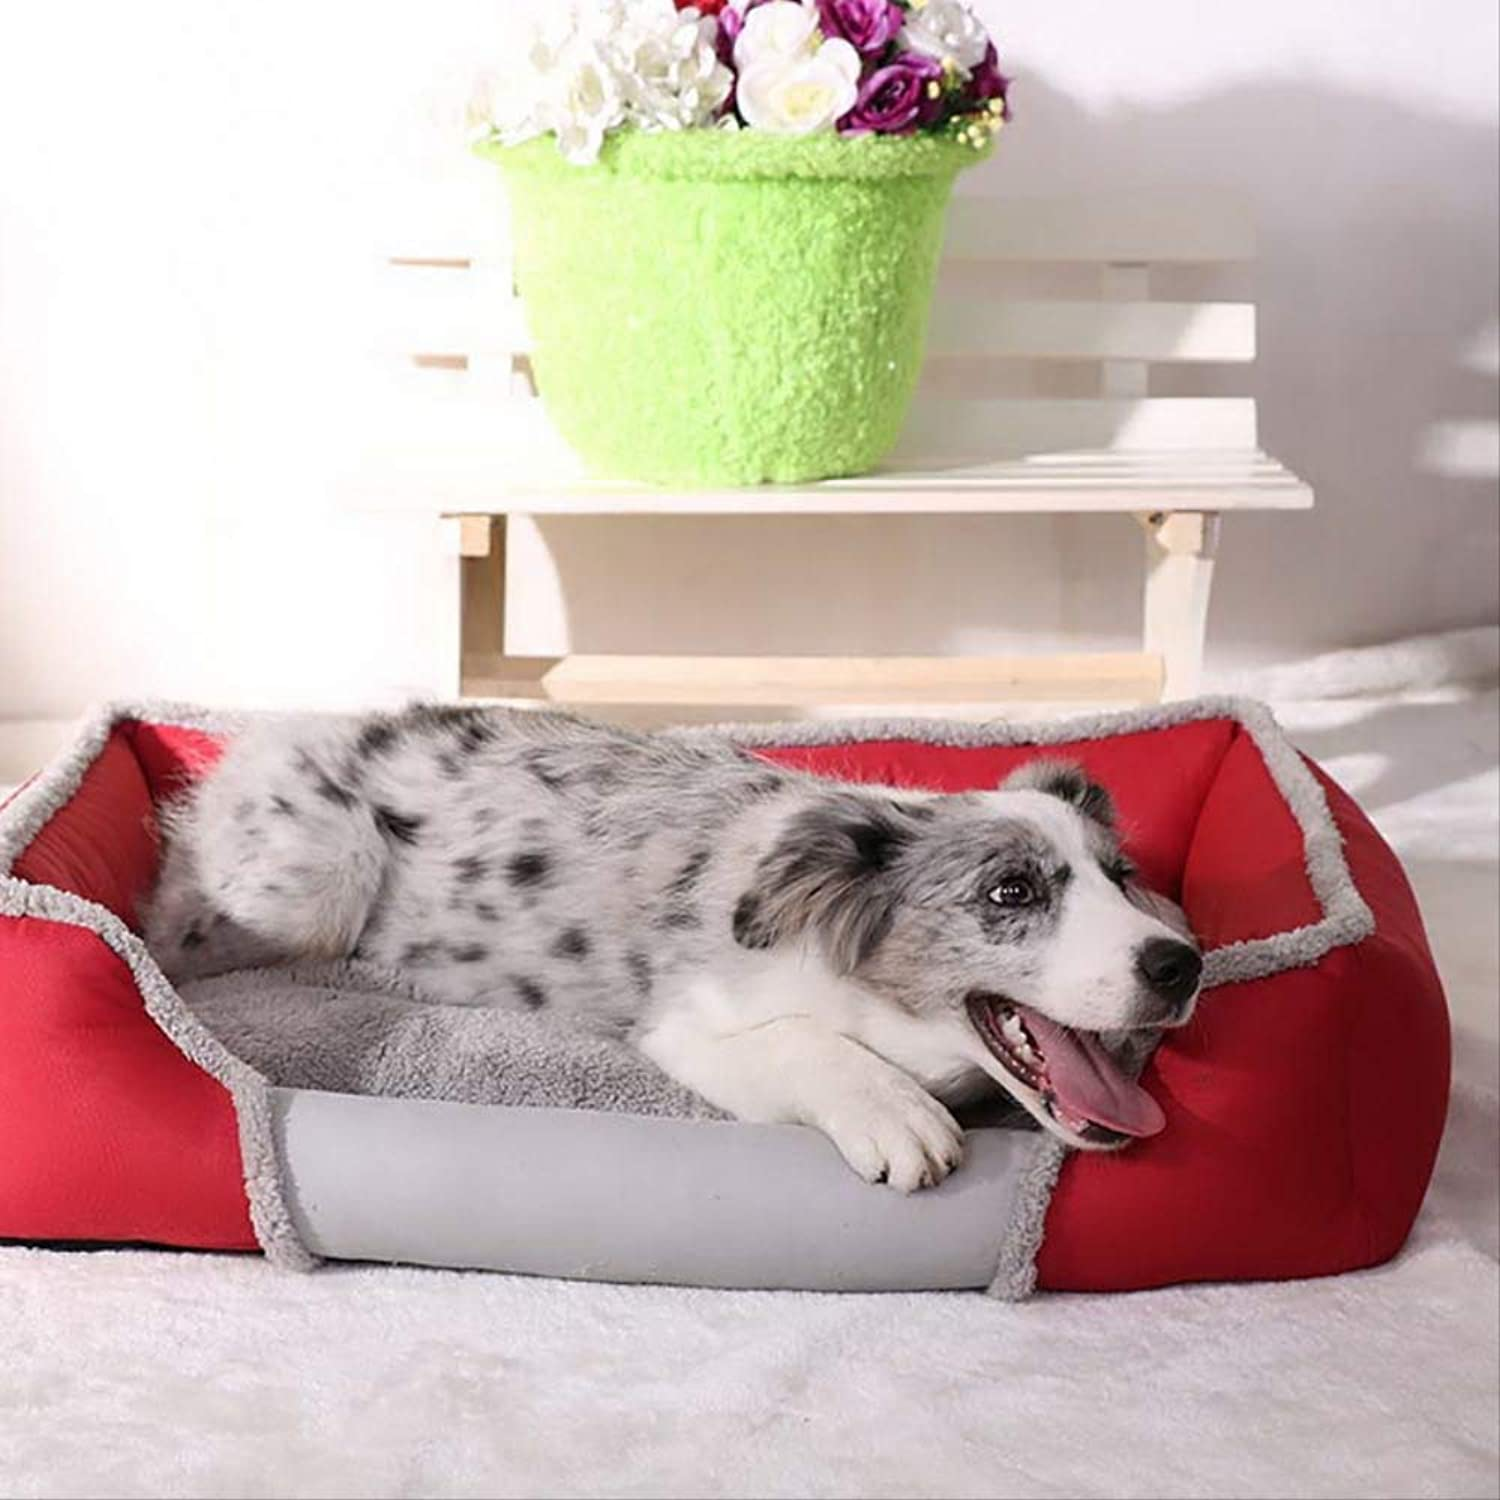 increíbles descuentos XIAOCONG Precioso Mascotawinter Kennel For For For Small Cat Bed Soft Dogs Bed Pet Dog Beds Warm Dogs House  centro comercial de moda